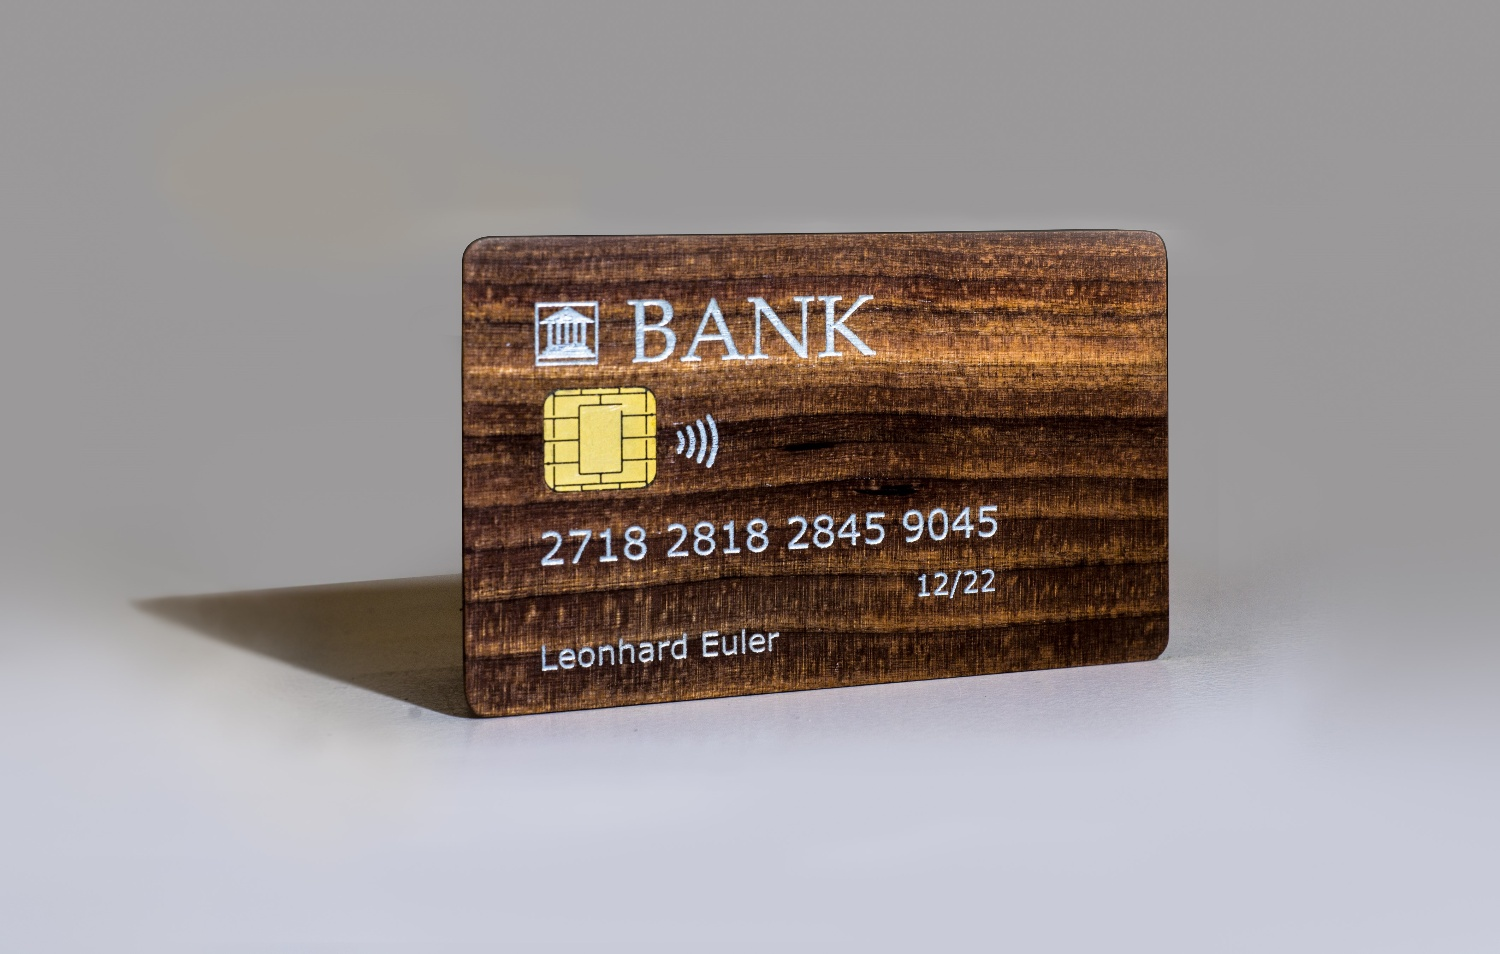 Banking card as debit card or credit card